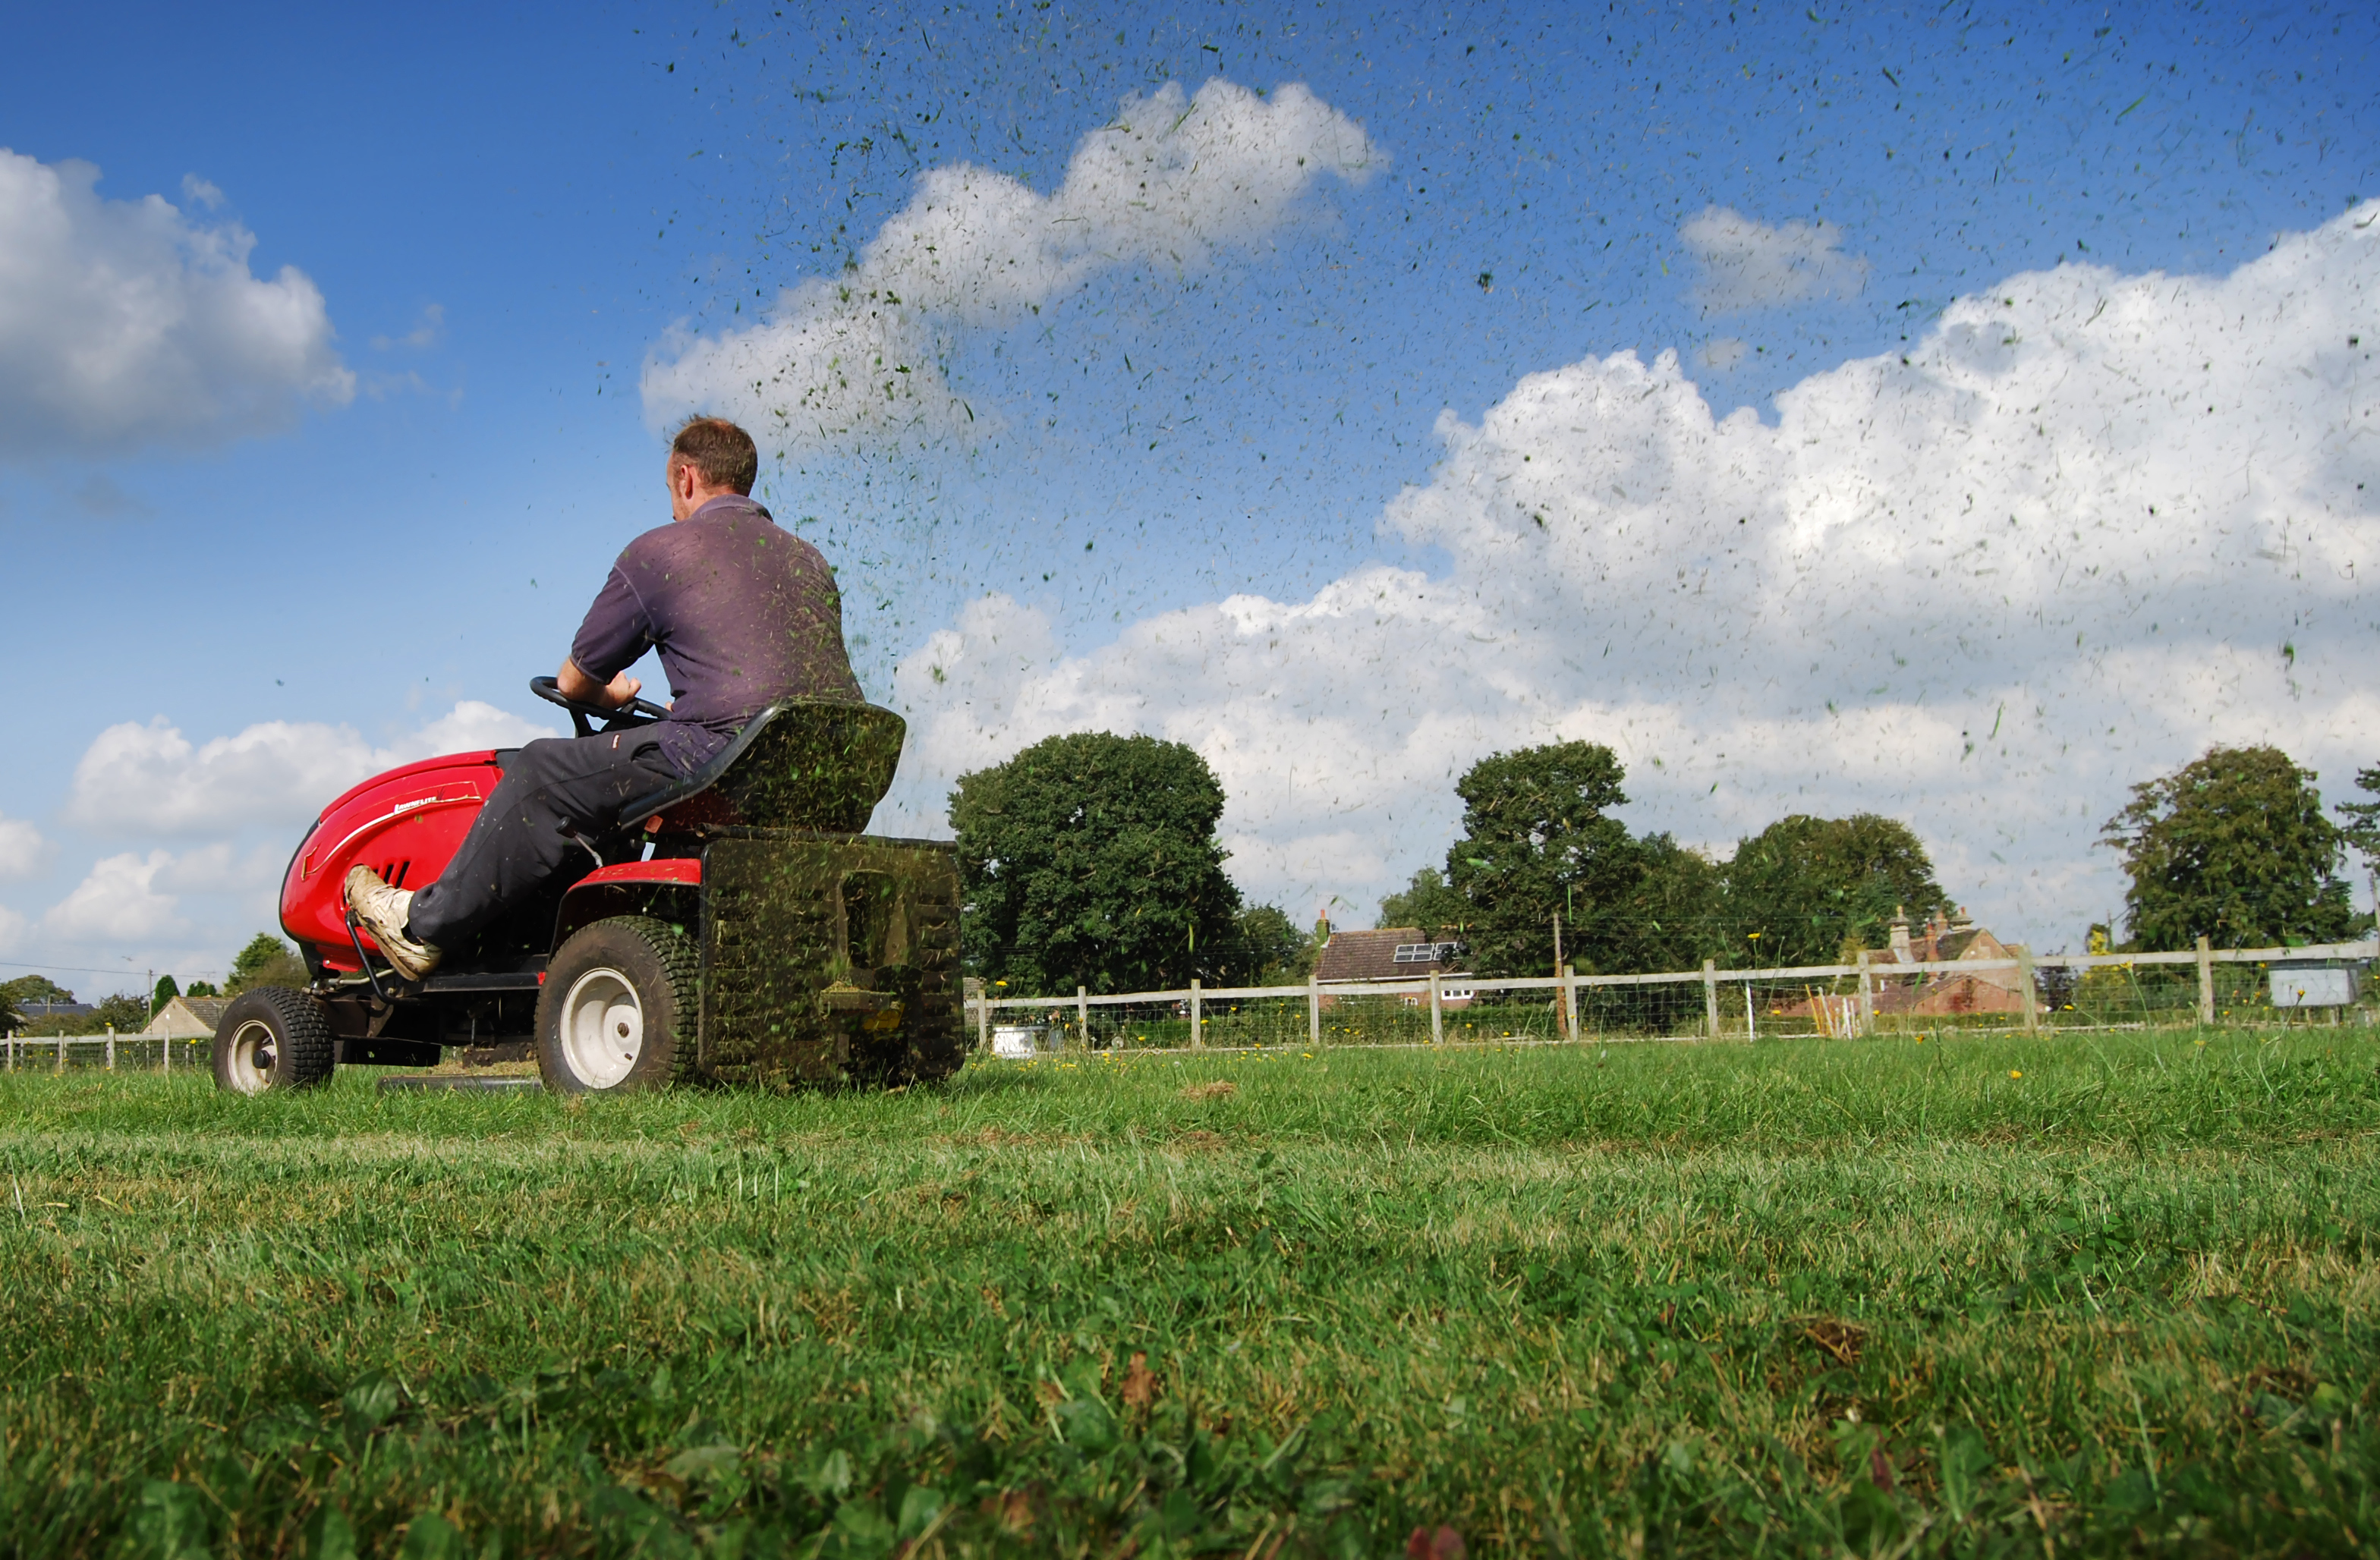 How to Make a Riding Lawnmower Go Faster | Hunker